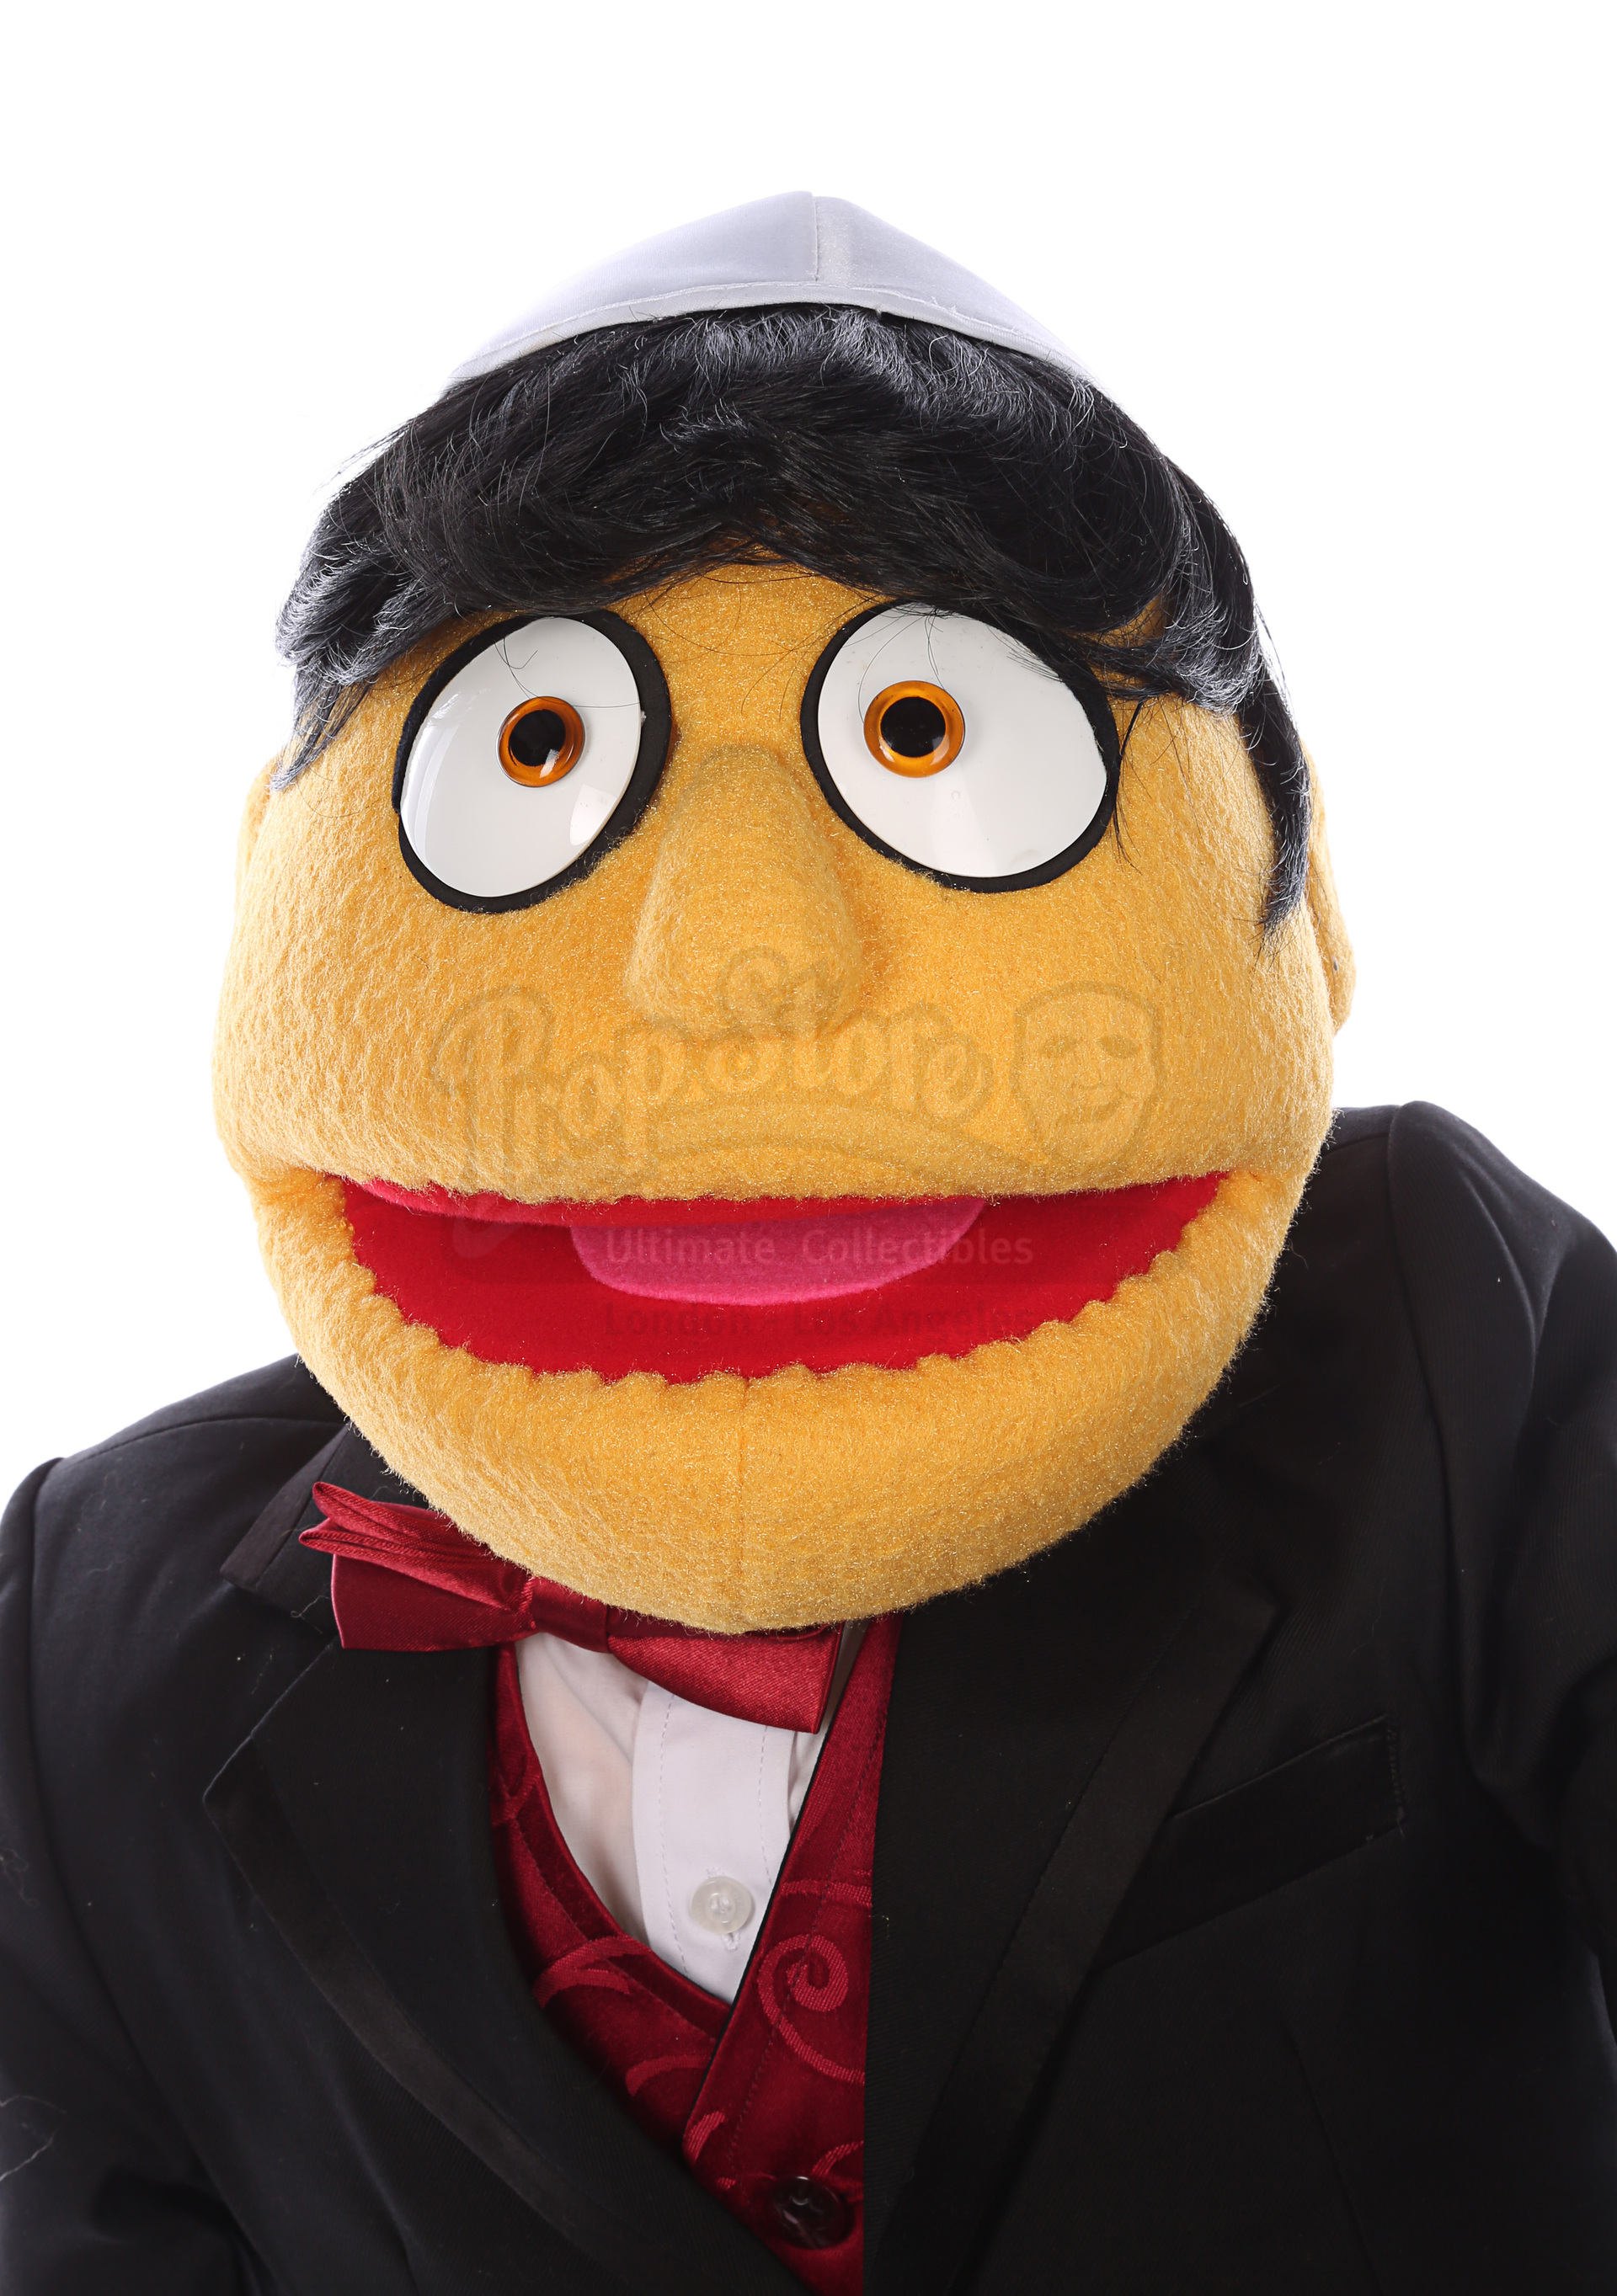 AVENUE Q (STAGE SHOW) - Wedding Puppet Collection: Kate Monster, Nicky, Princeton, Rod, Kate Monster - Image 7 of 23